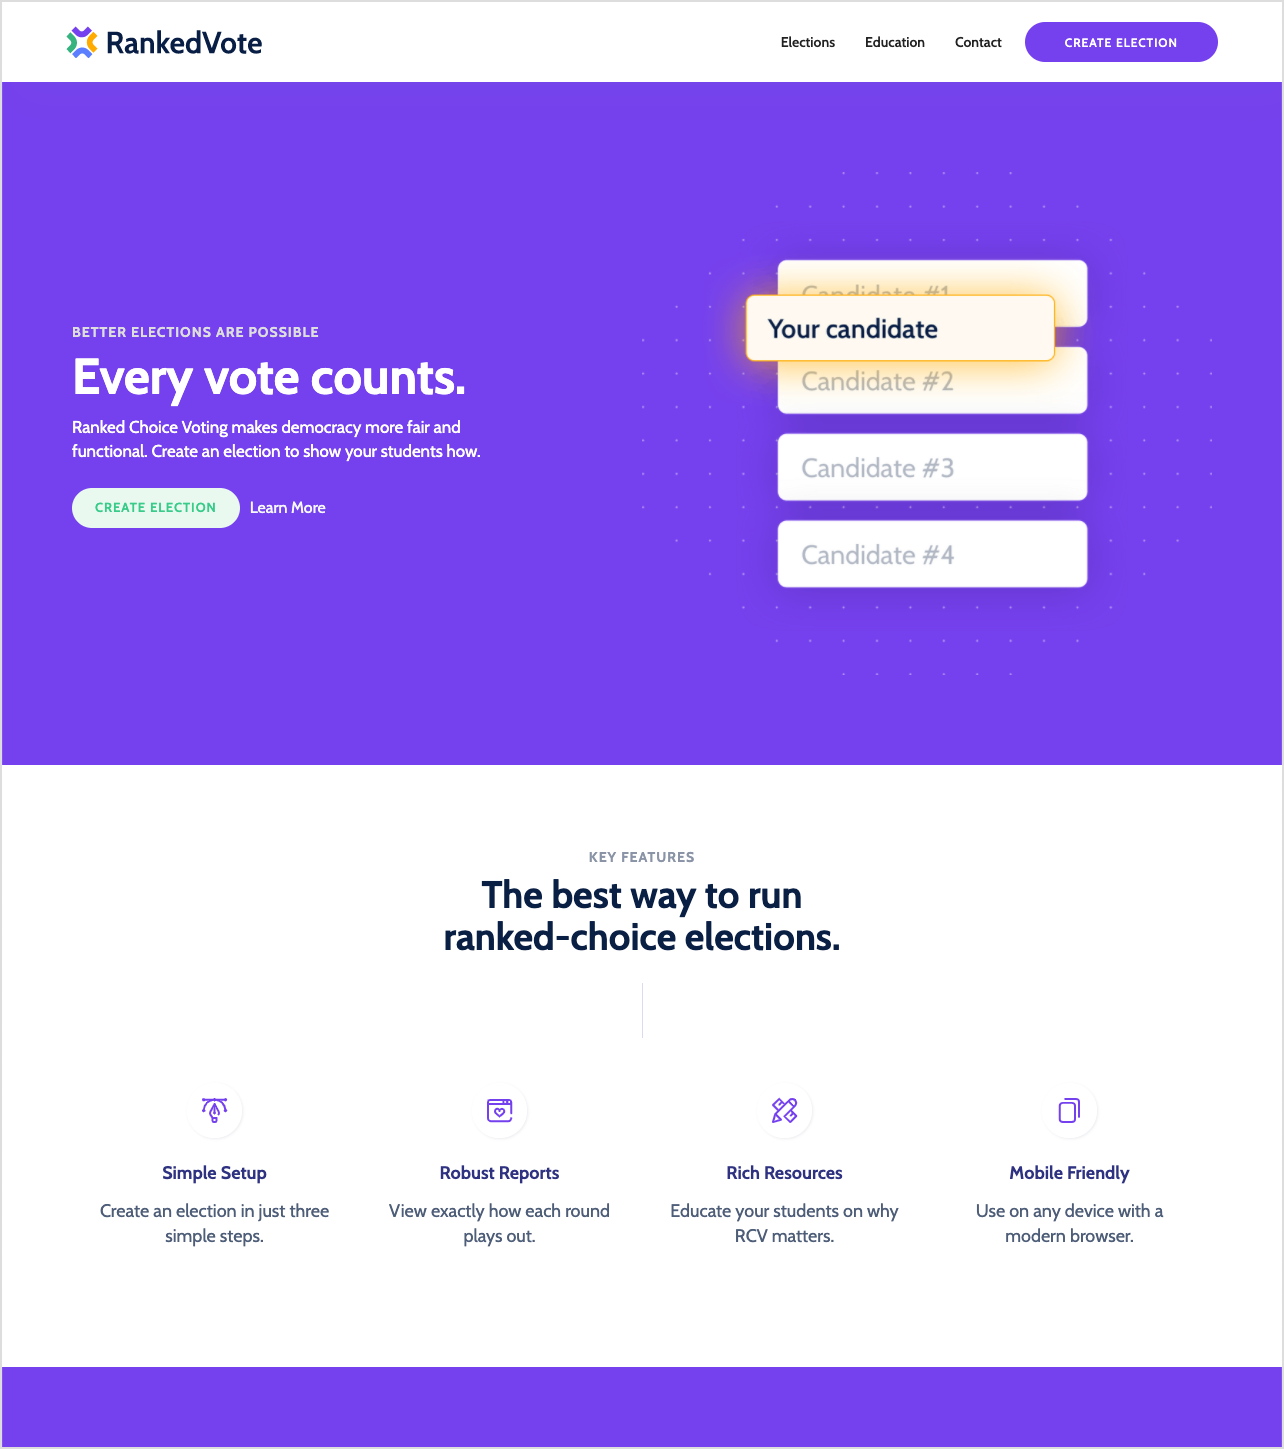 RankedVote's original homepage explaining their product